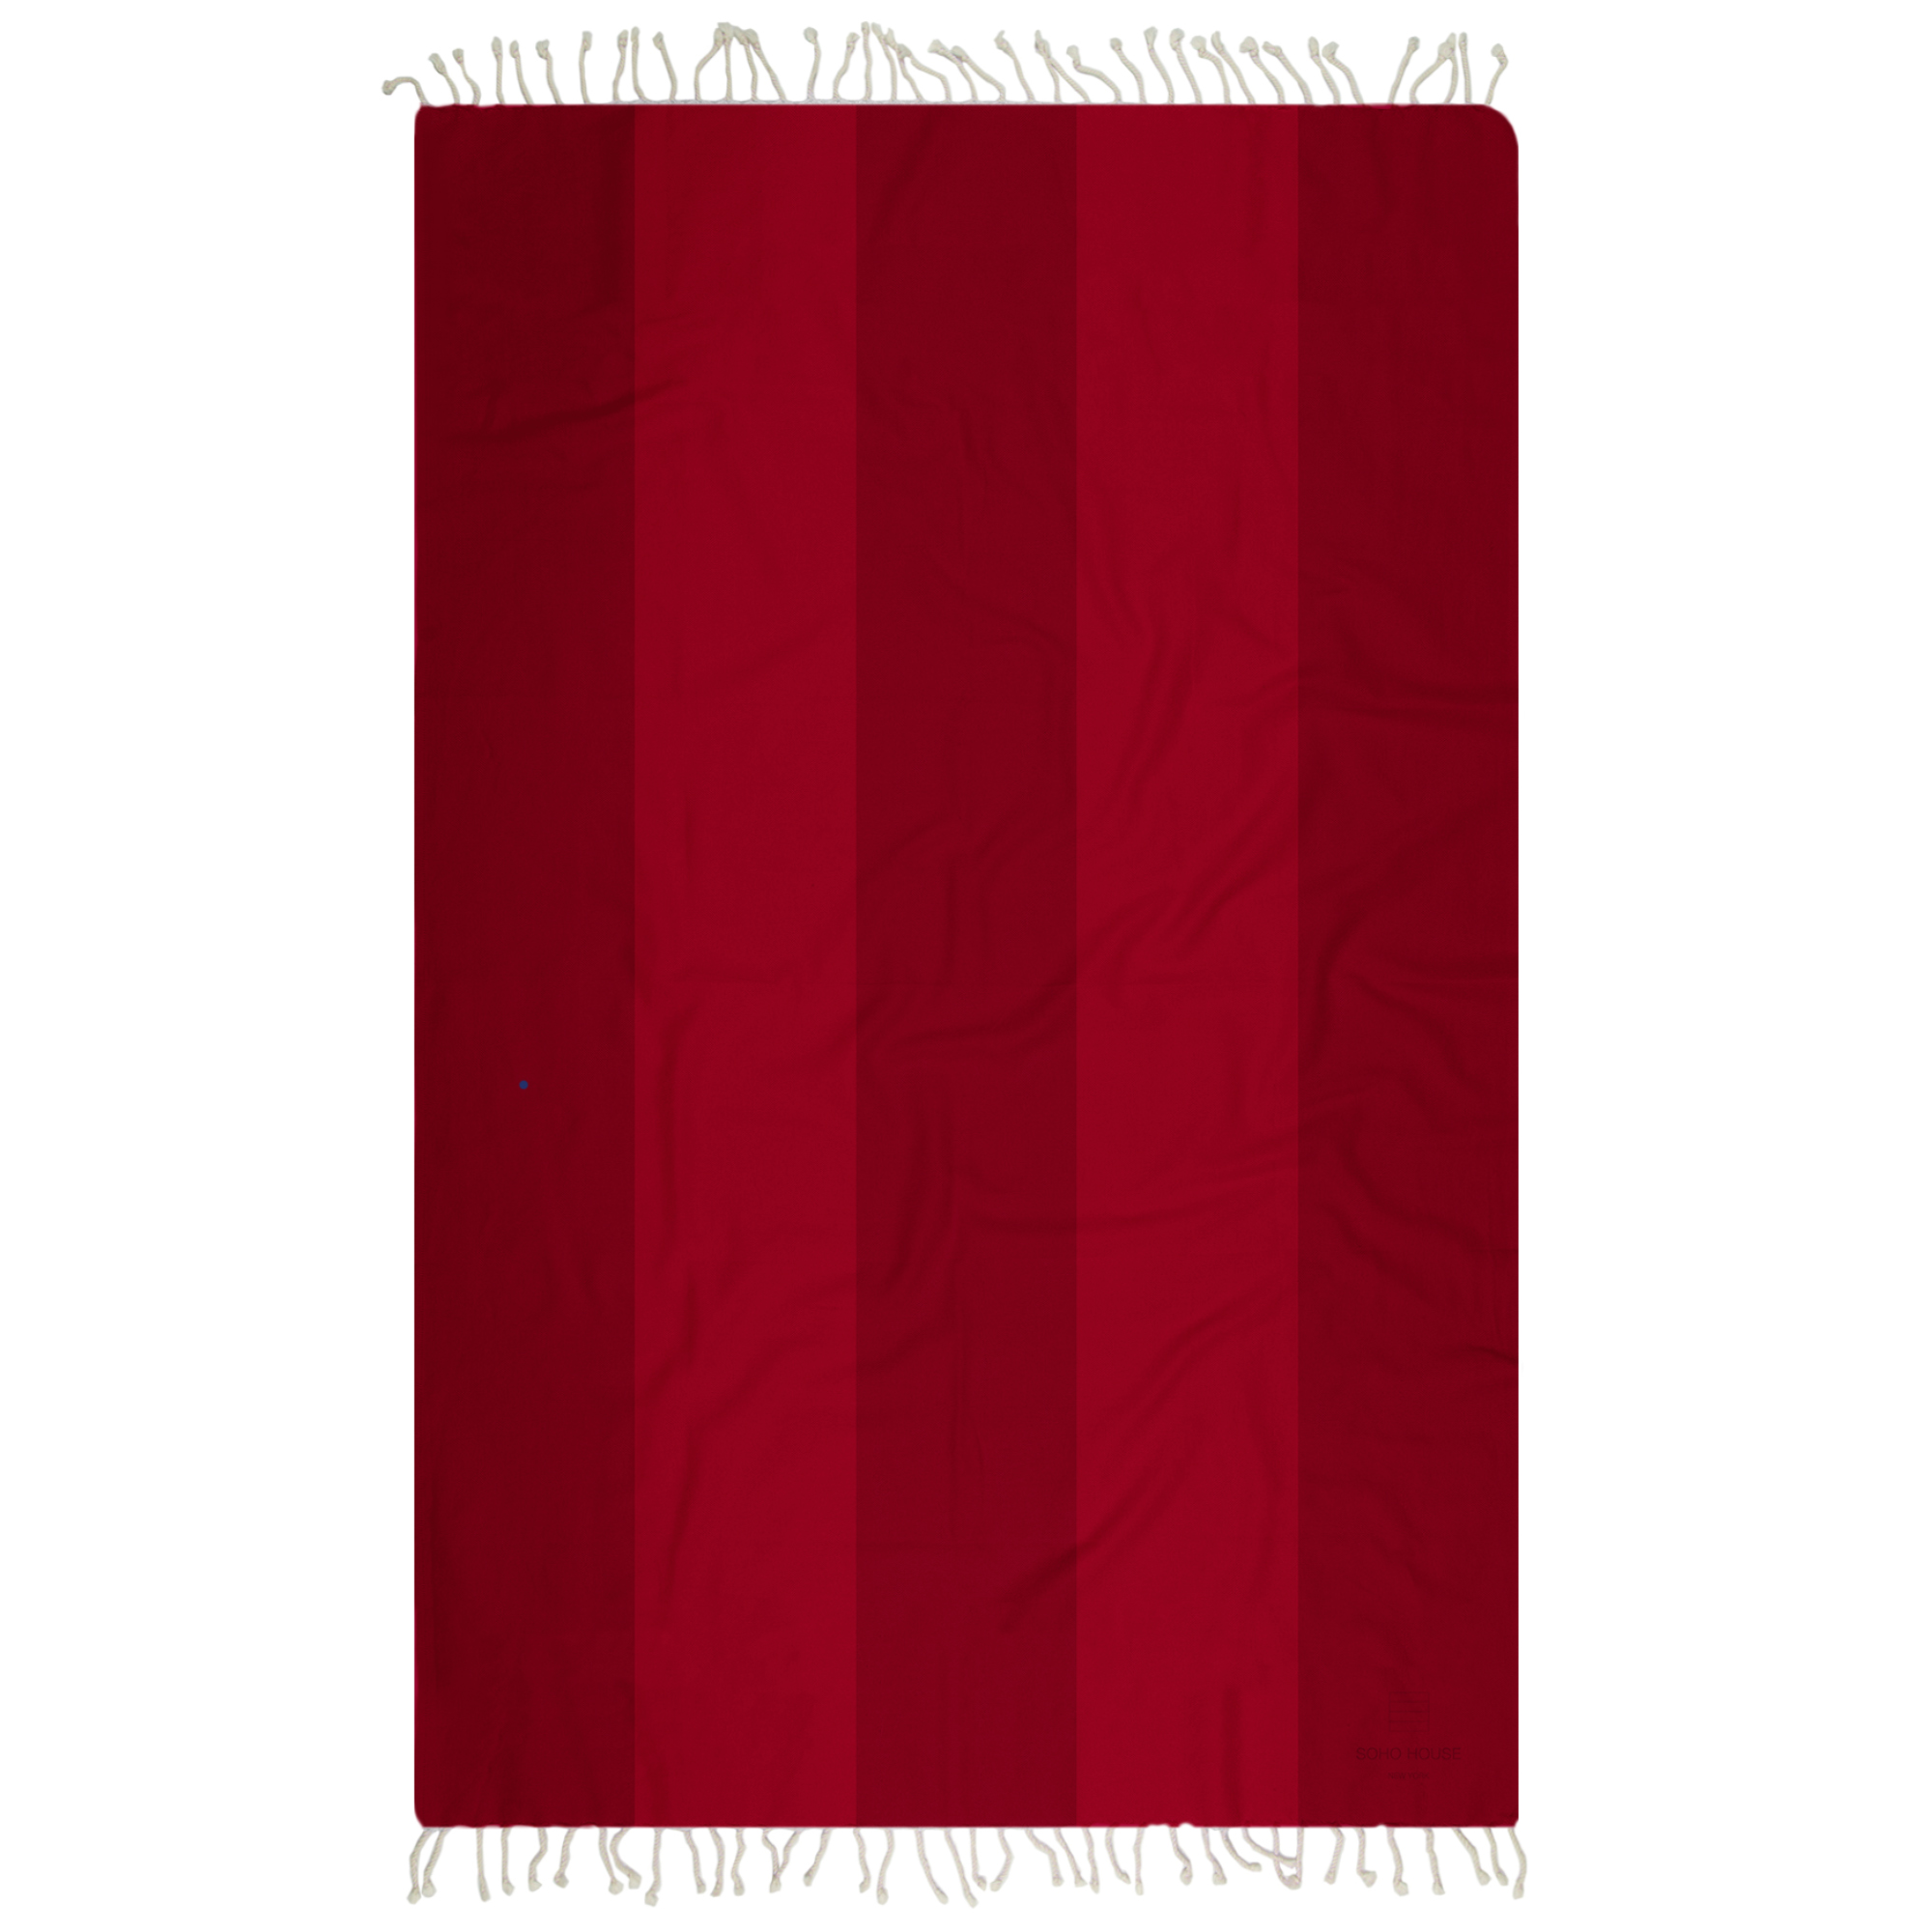 soho-house-shoreditch-spa-towel-collection-square